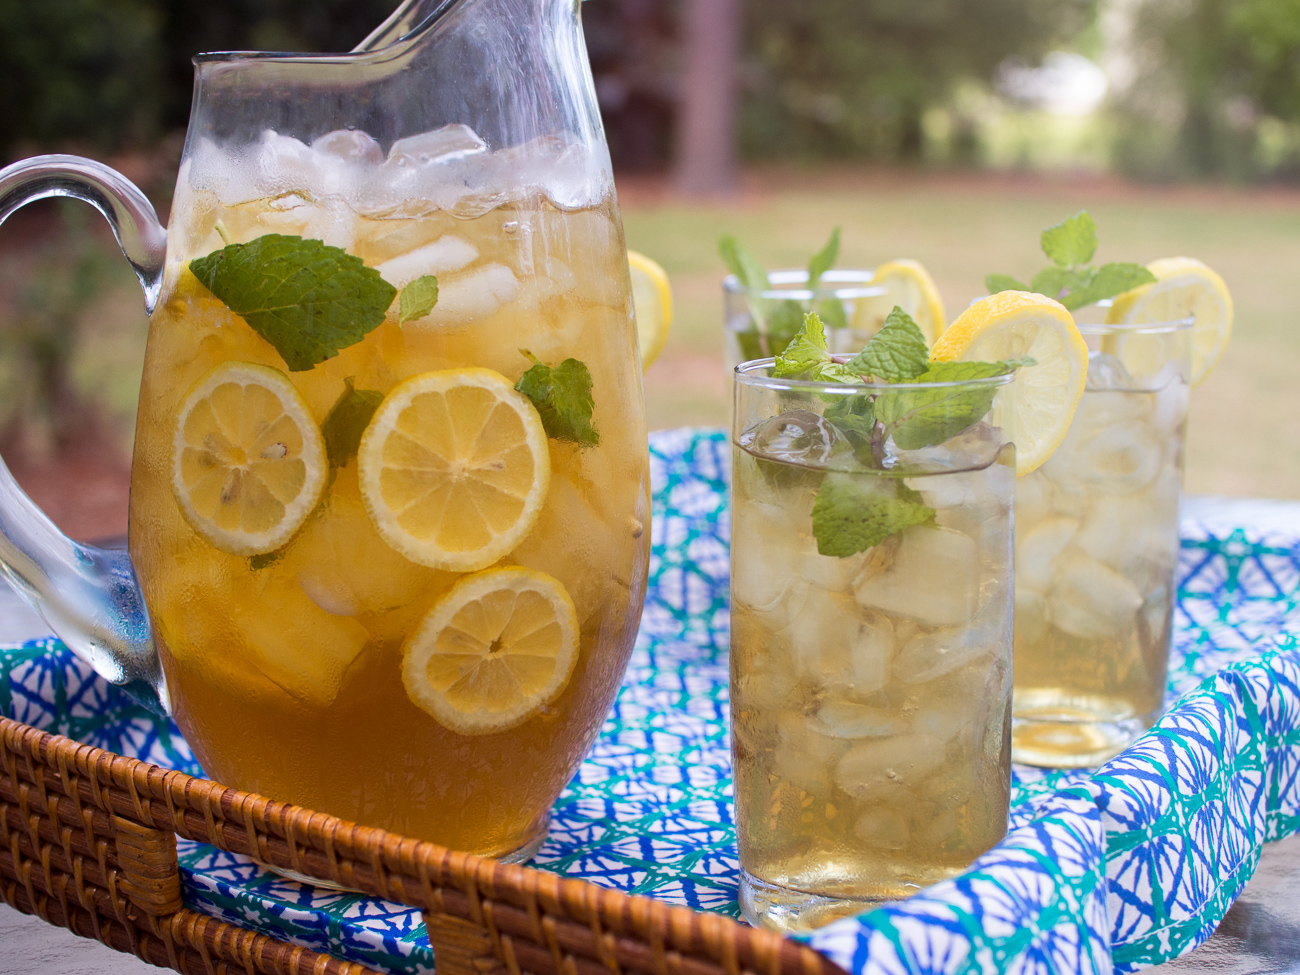 A glass pitcher of iced tea and lemons sits next to a tall glass full of tea and ice on a woven tray with a bright blue patterned cloth.